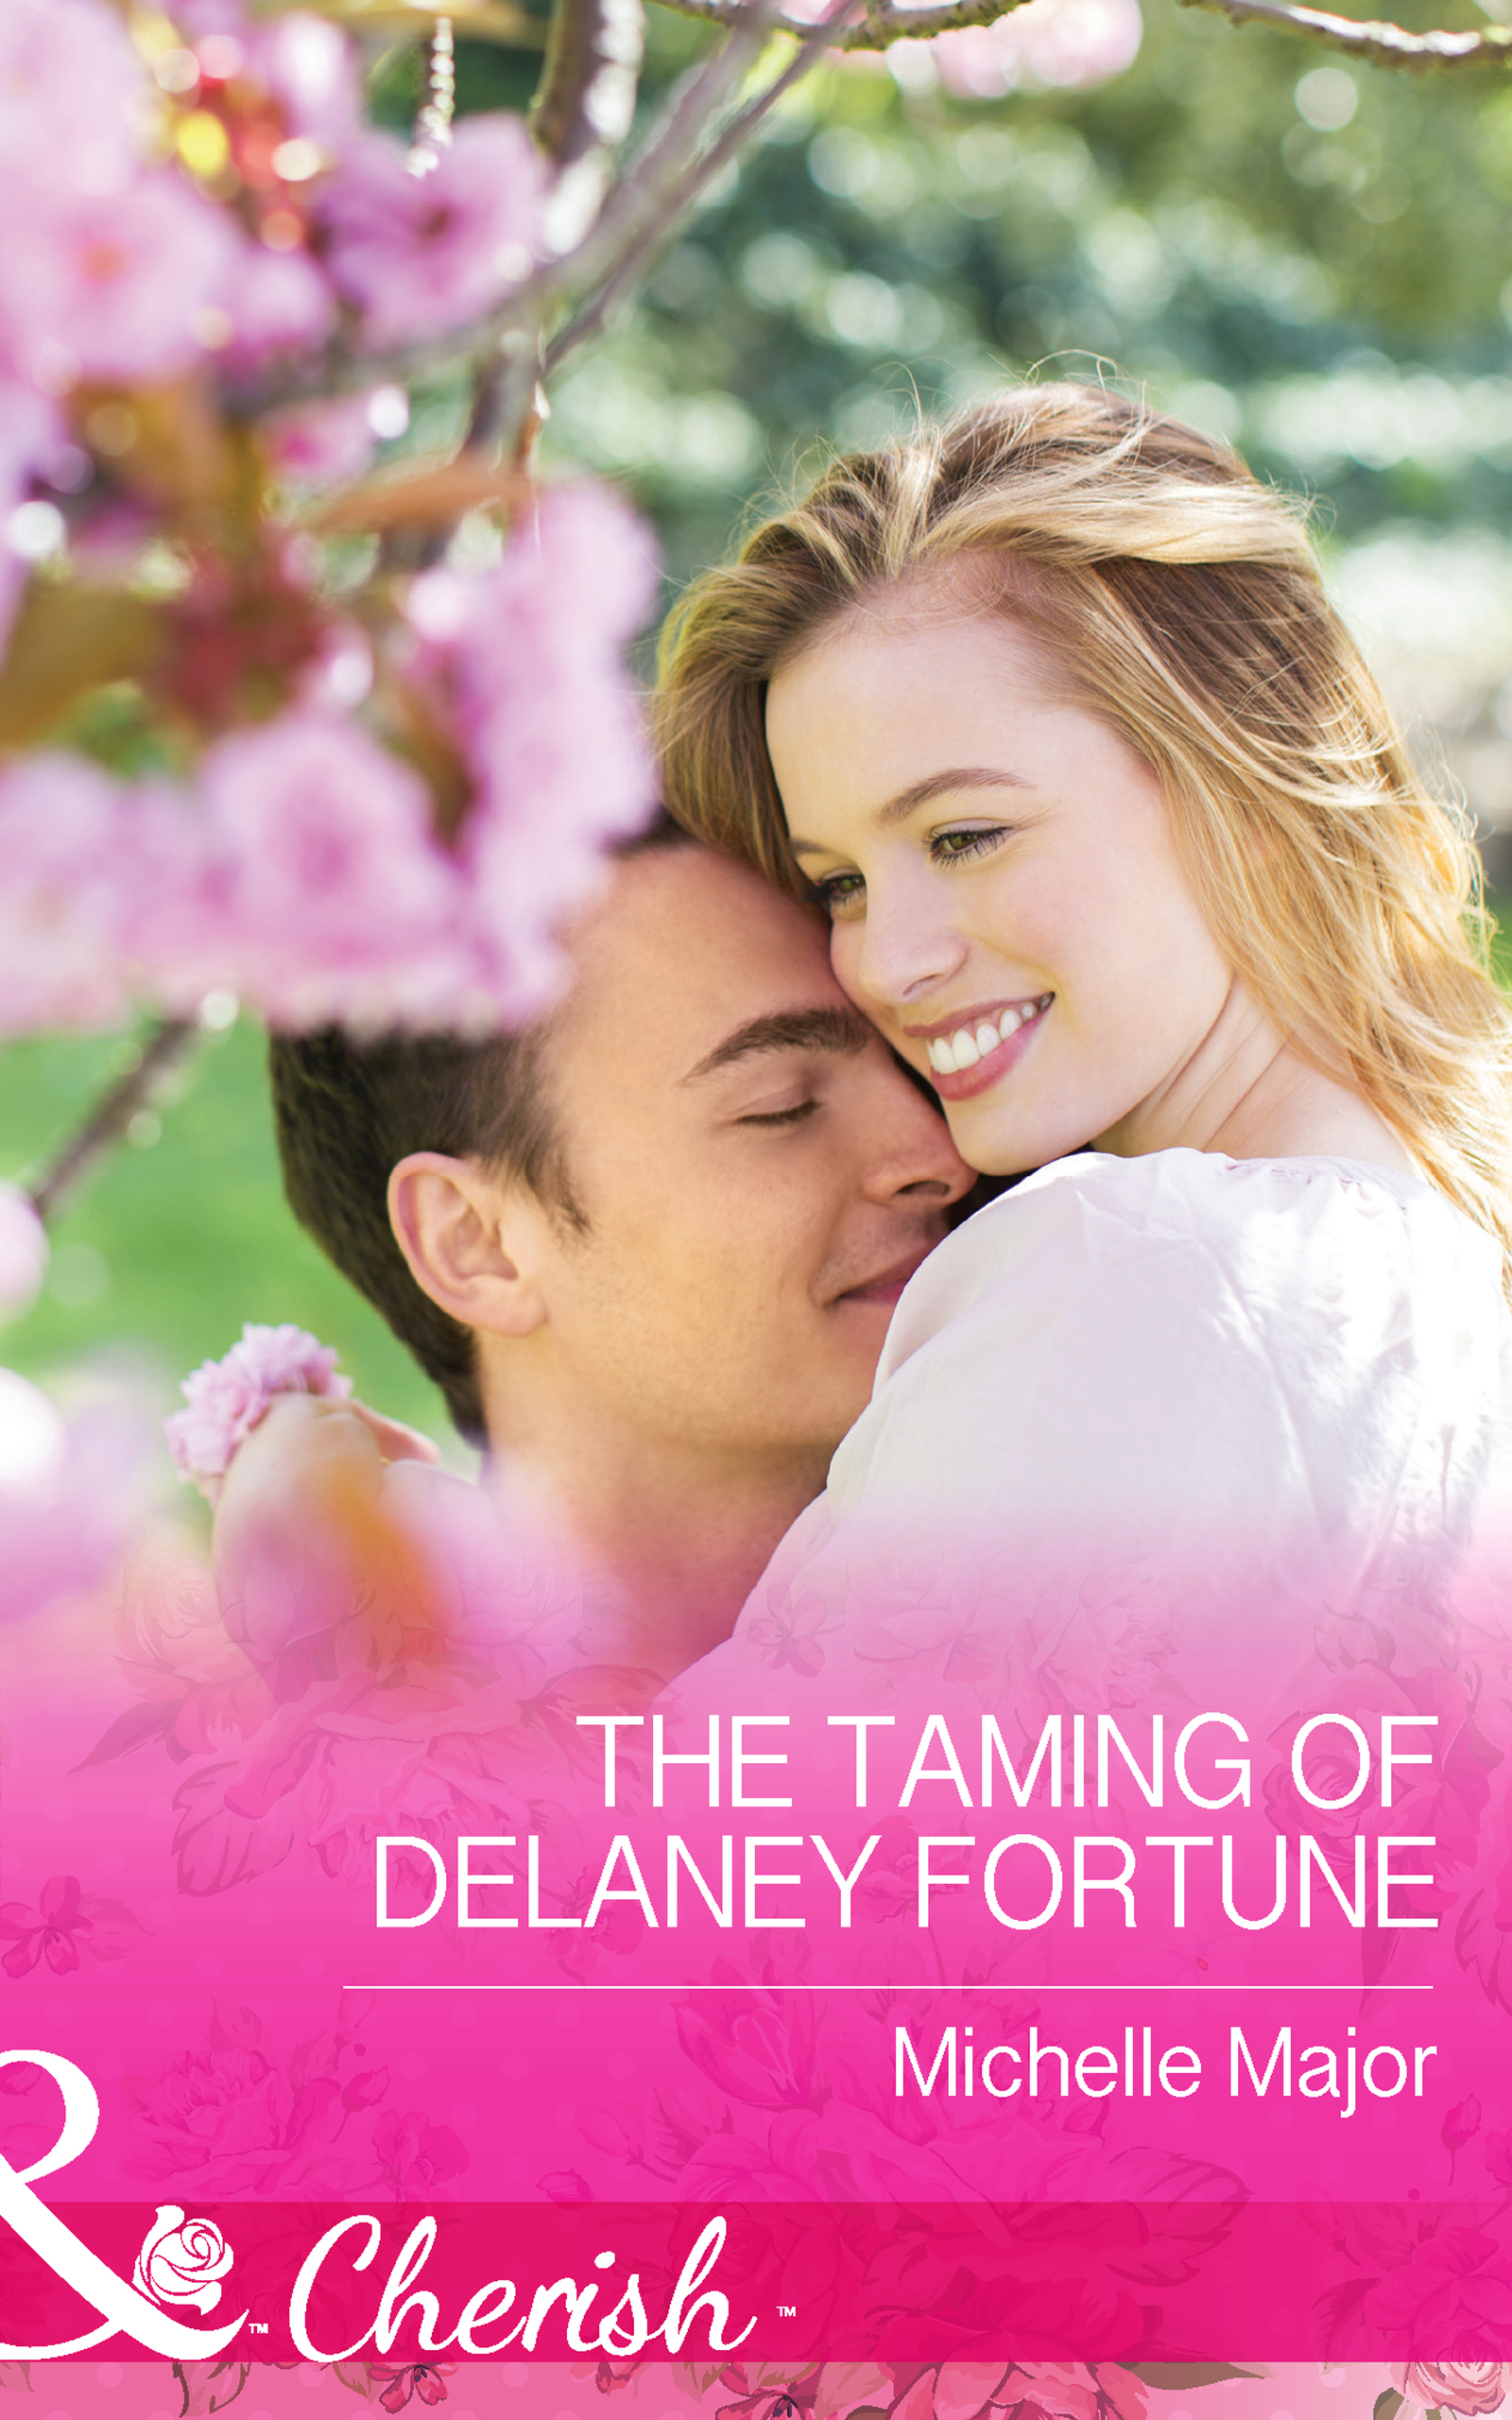 The Taming of Delaney Fortune (Mills & Boon Cherish) (The Fortunes of Texas: Cowboy Country - Book 4)